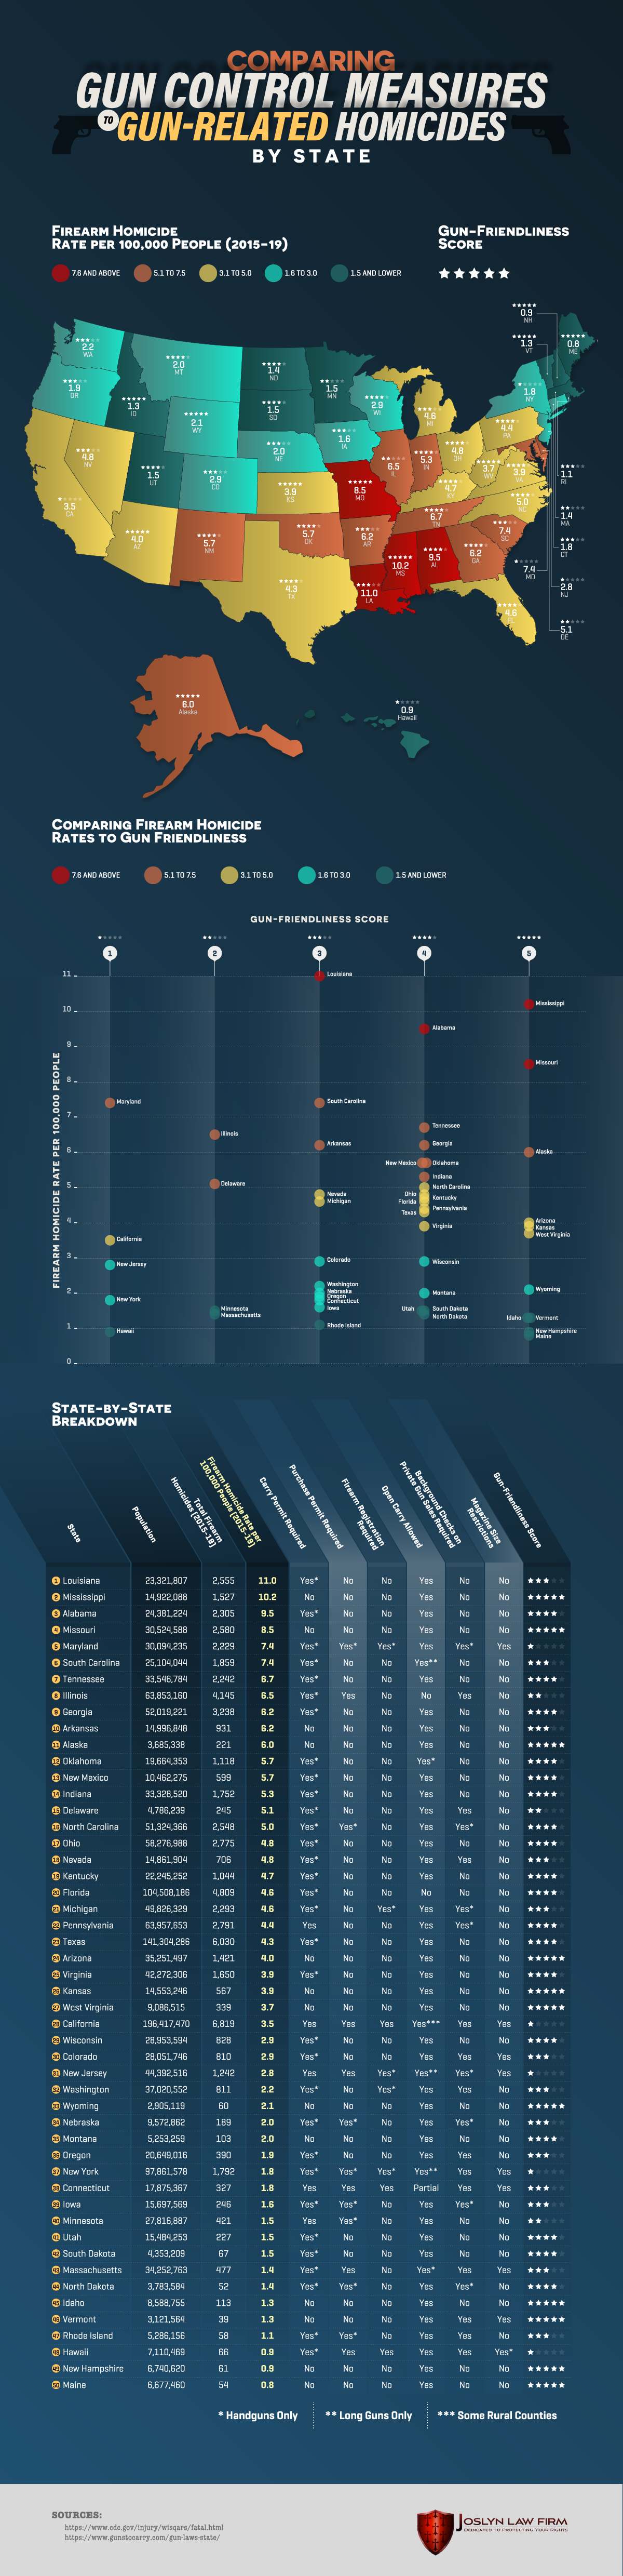 New Infographic Compares Gun Friendliness to Gun Violence in Each State